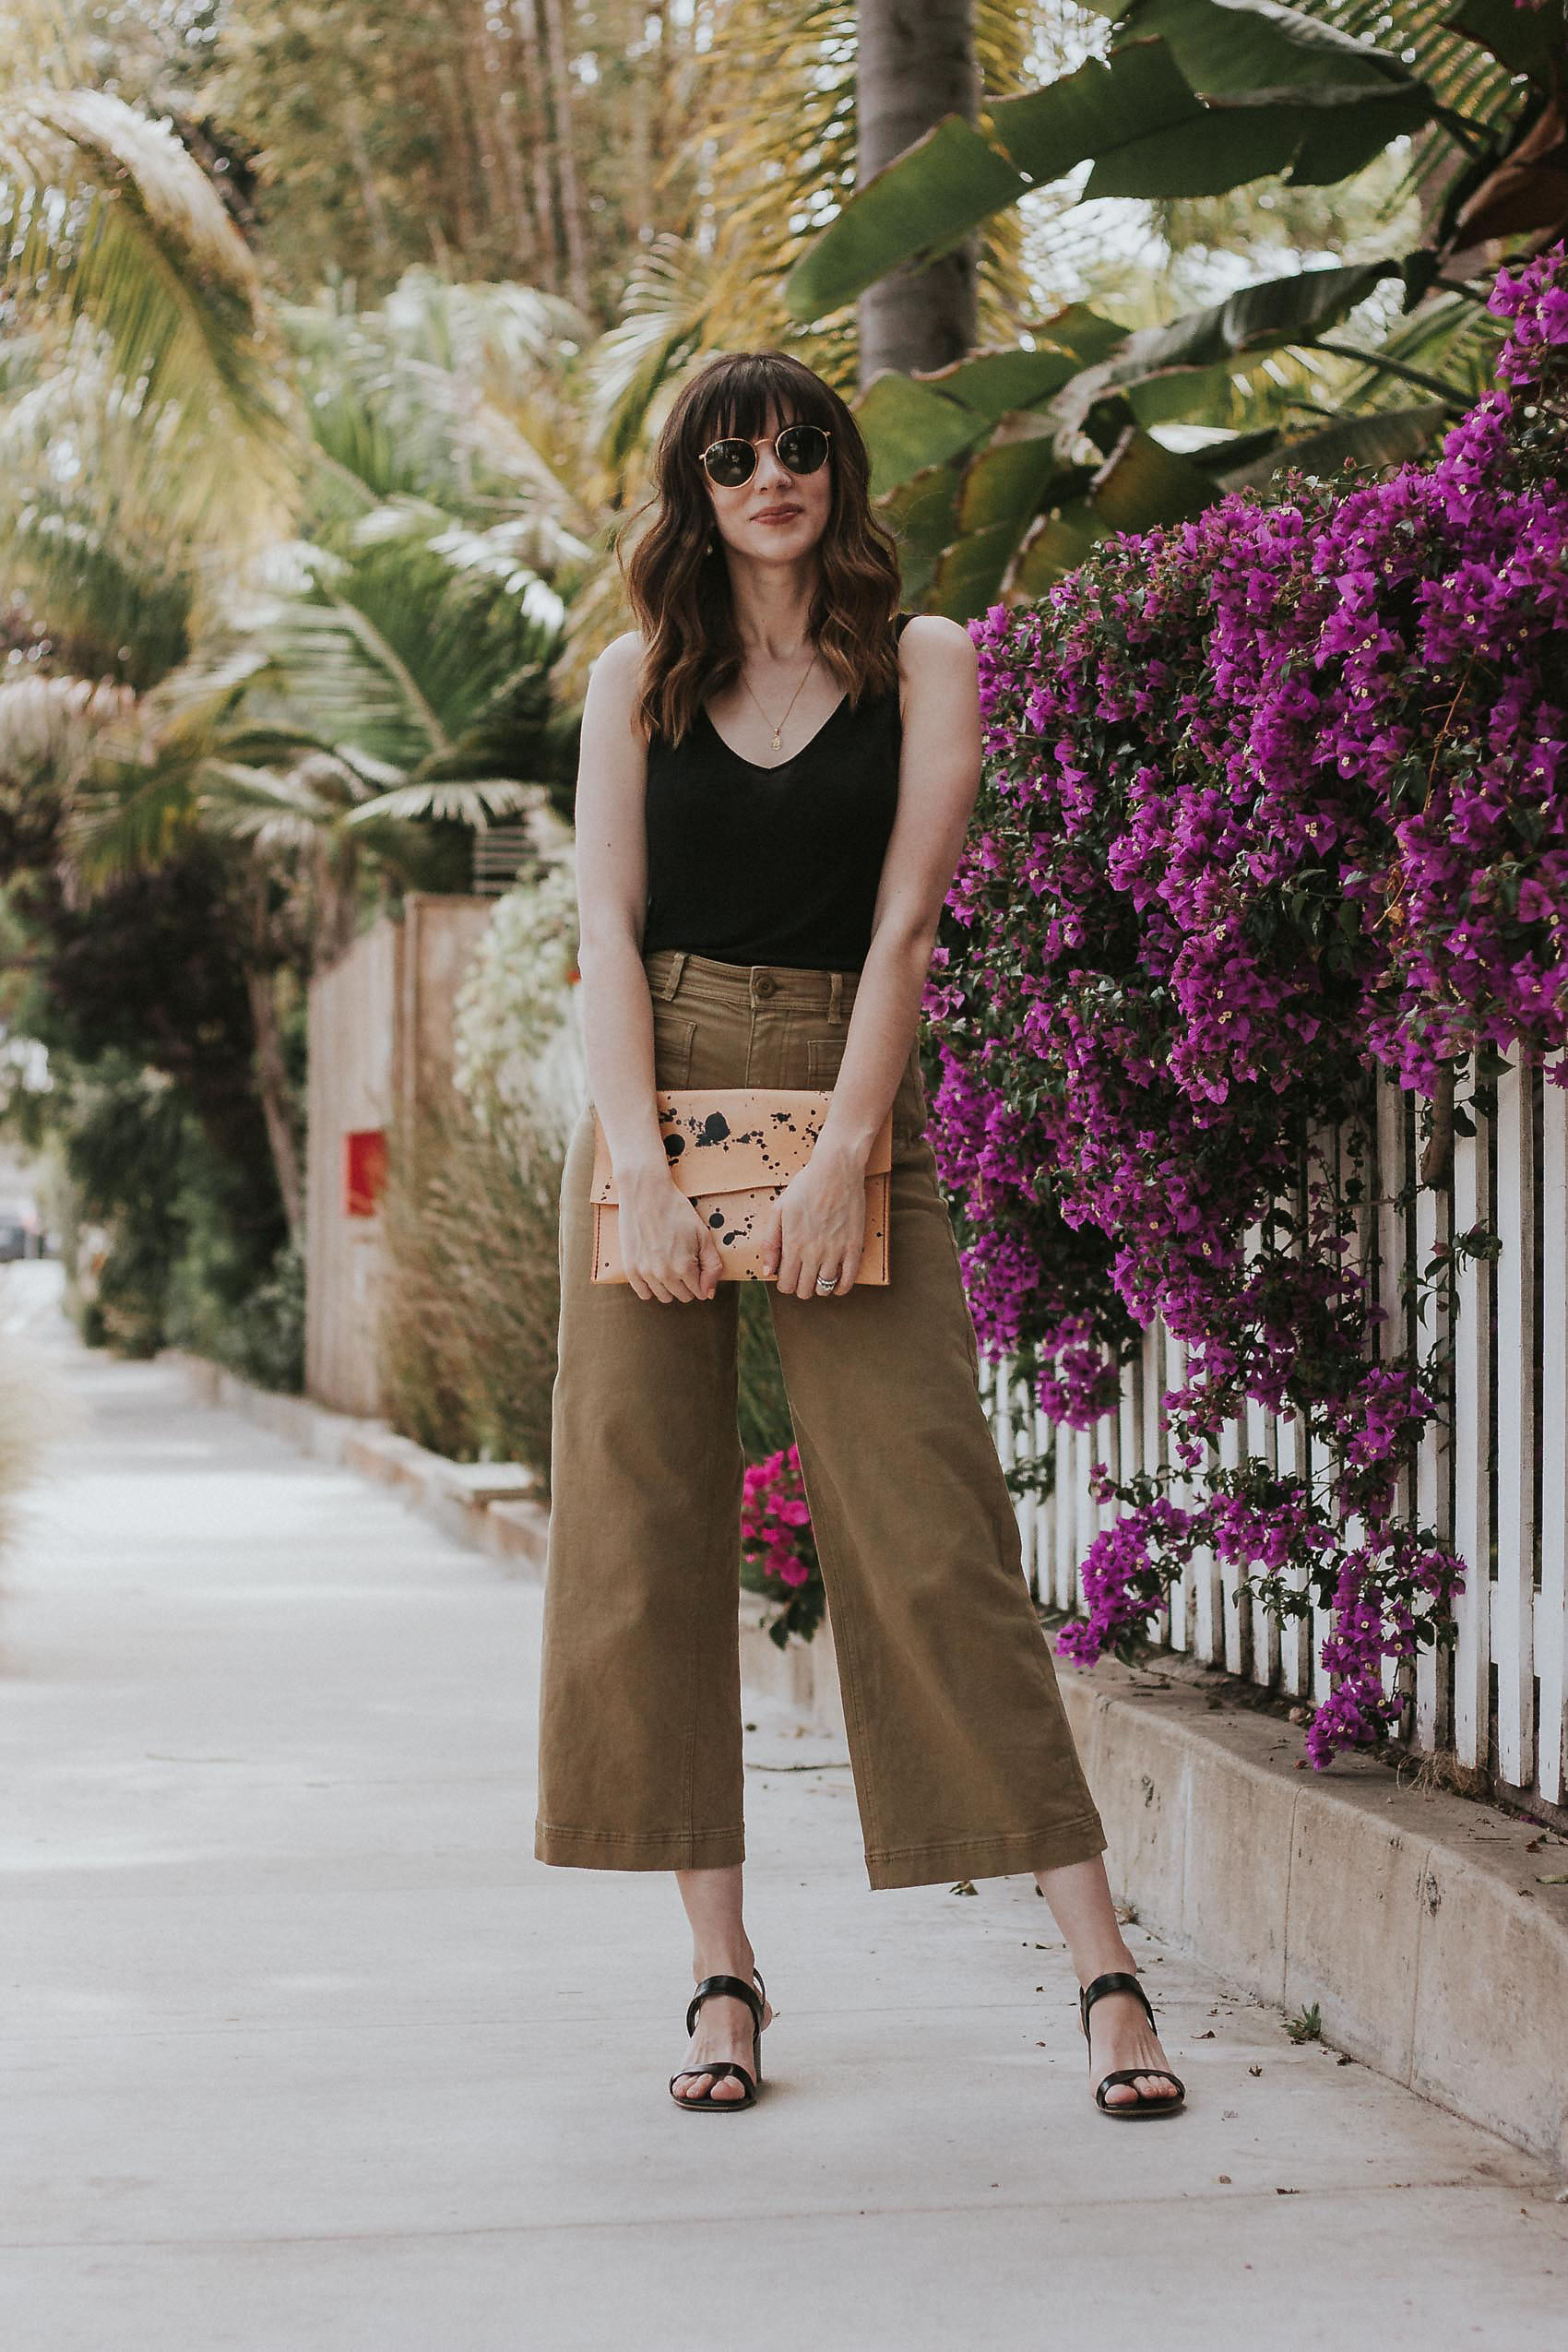 Jeans and a Teacup fashion blogger wearing Everlane Wide Leg Patch Pocket Crop Pants, Walter & George Clutch, and Everlane Sandals